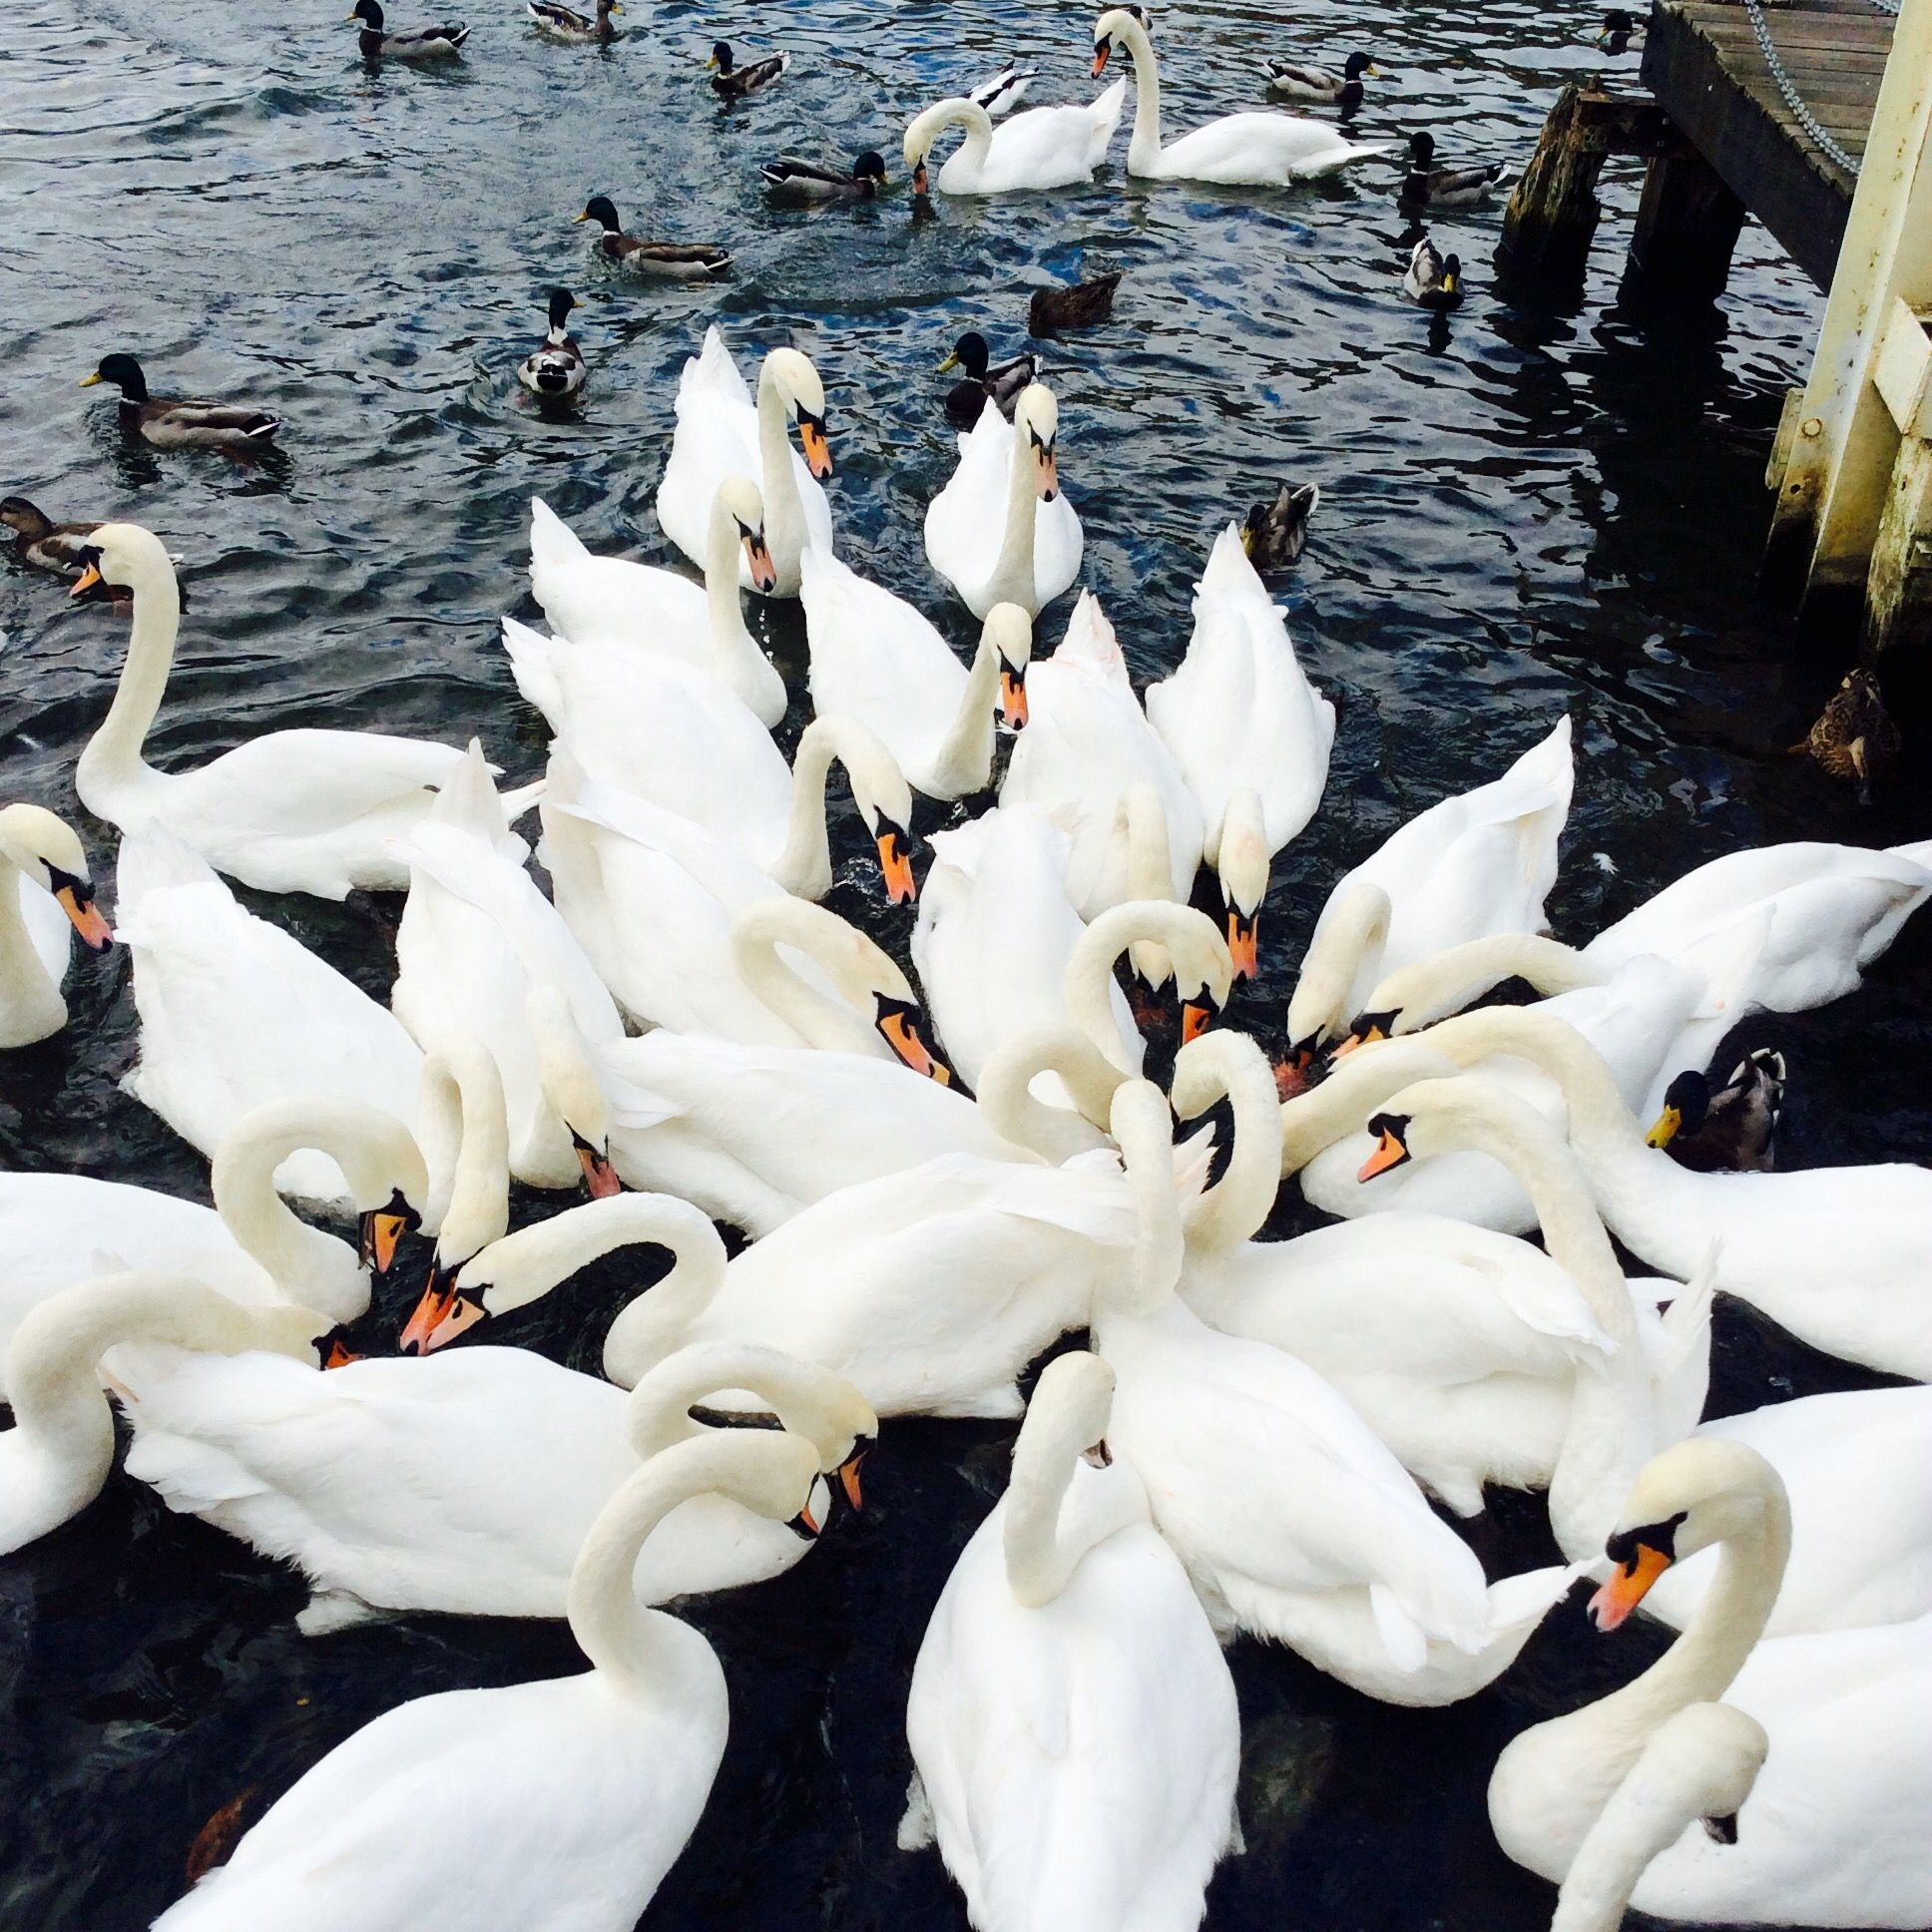 Swans  photo by me